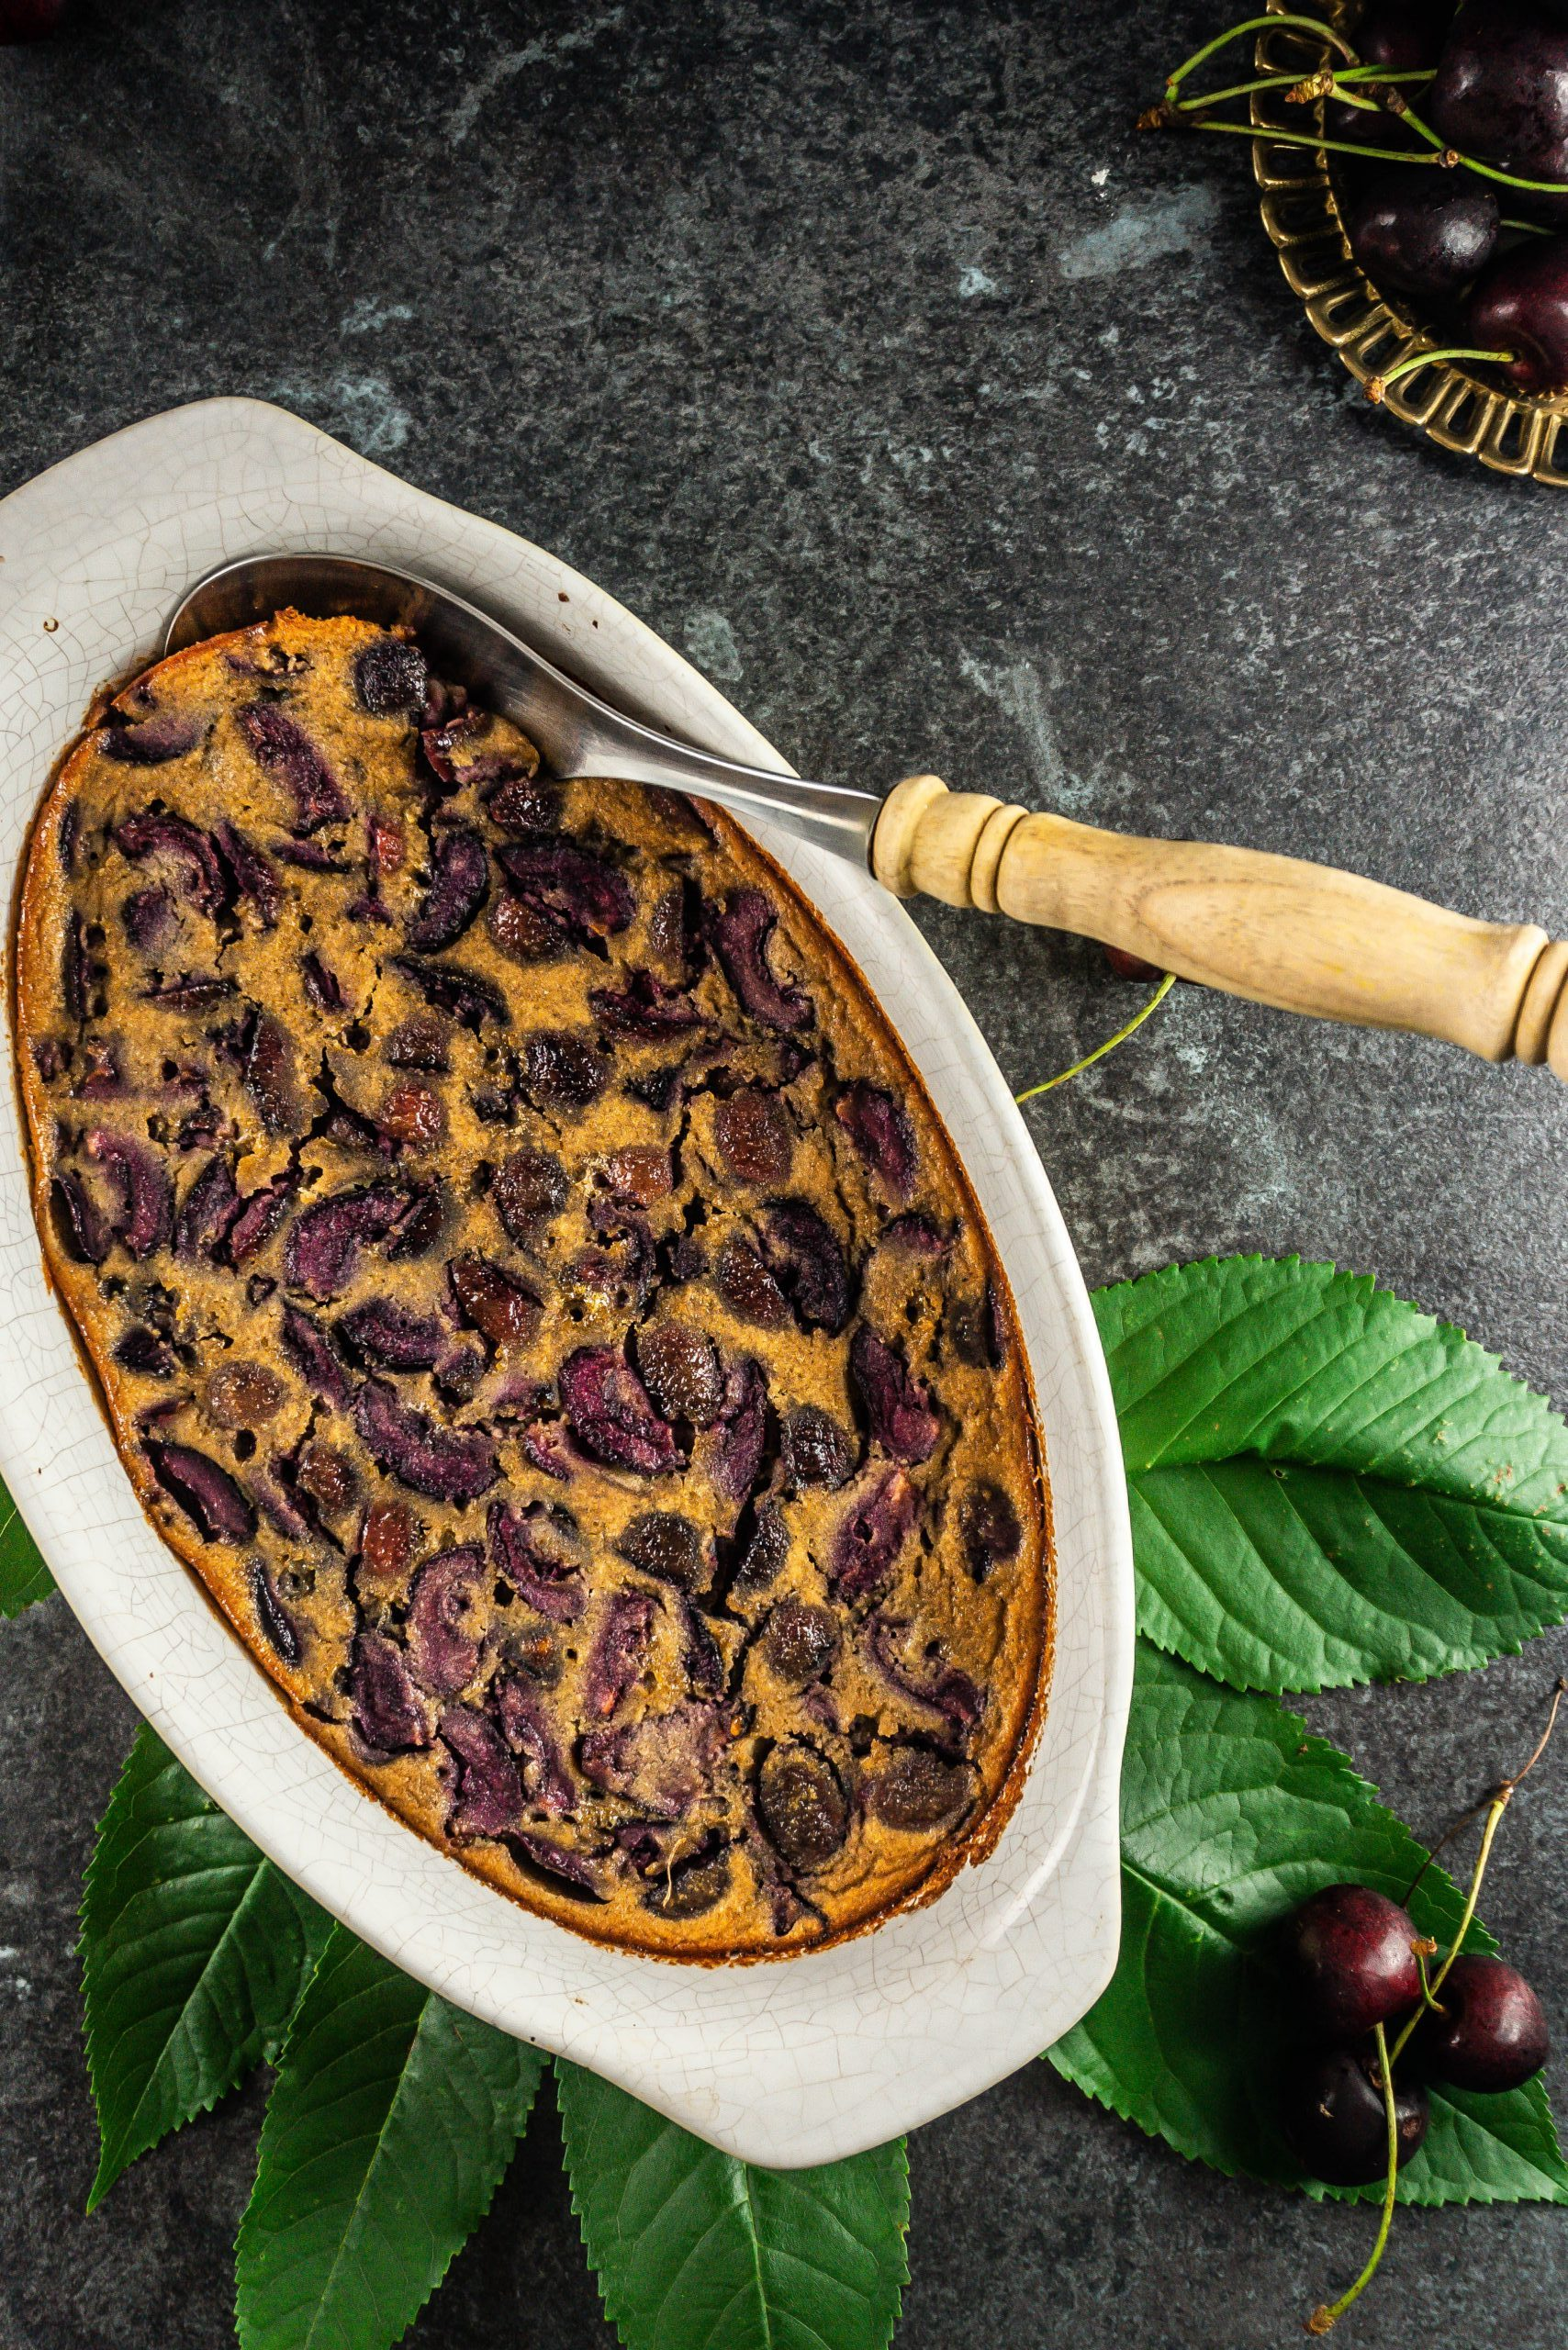 Cherry Clafoutis baked in a casserole dish with a serving spoon tucked into it and cherries lying around photographed from above